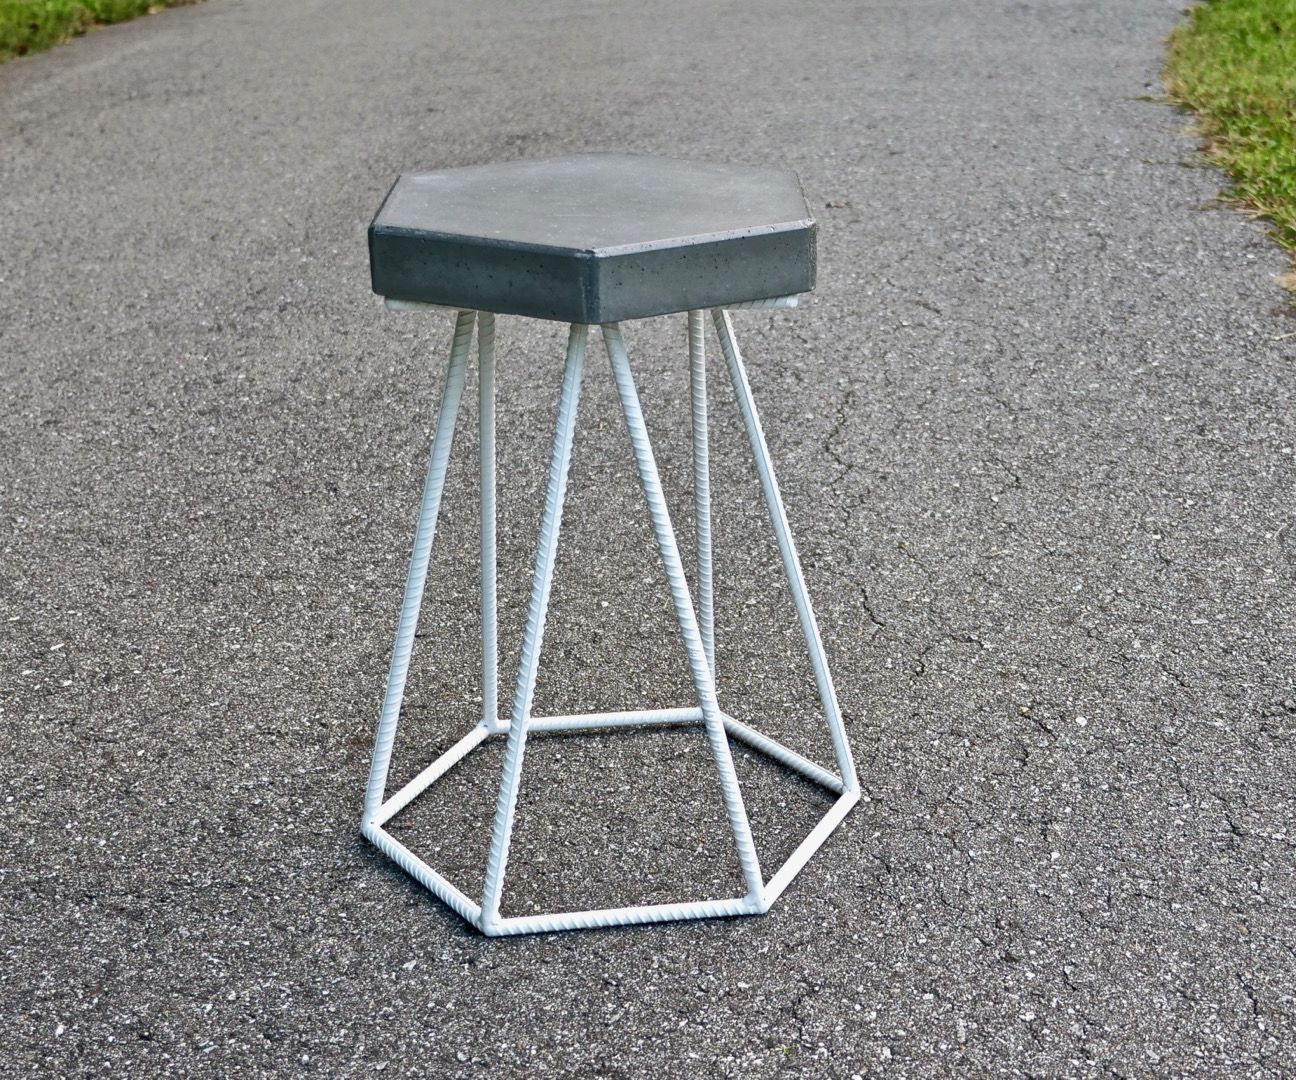 DIY Concrete and Steel Outdoor End Table | How to Build - Welding